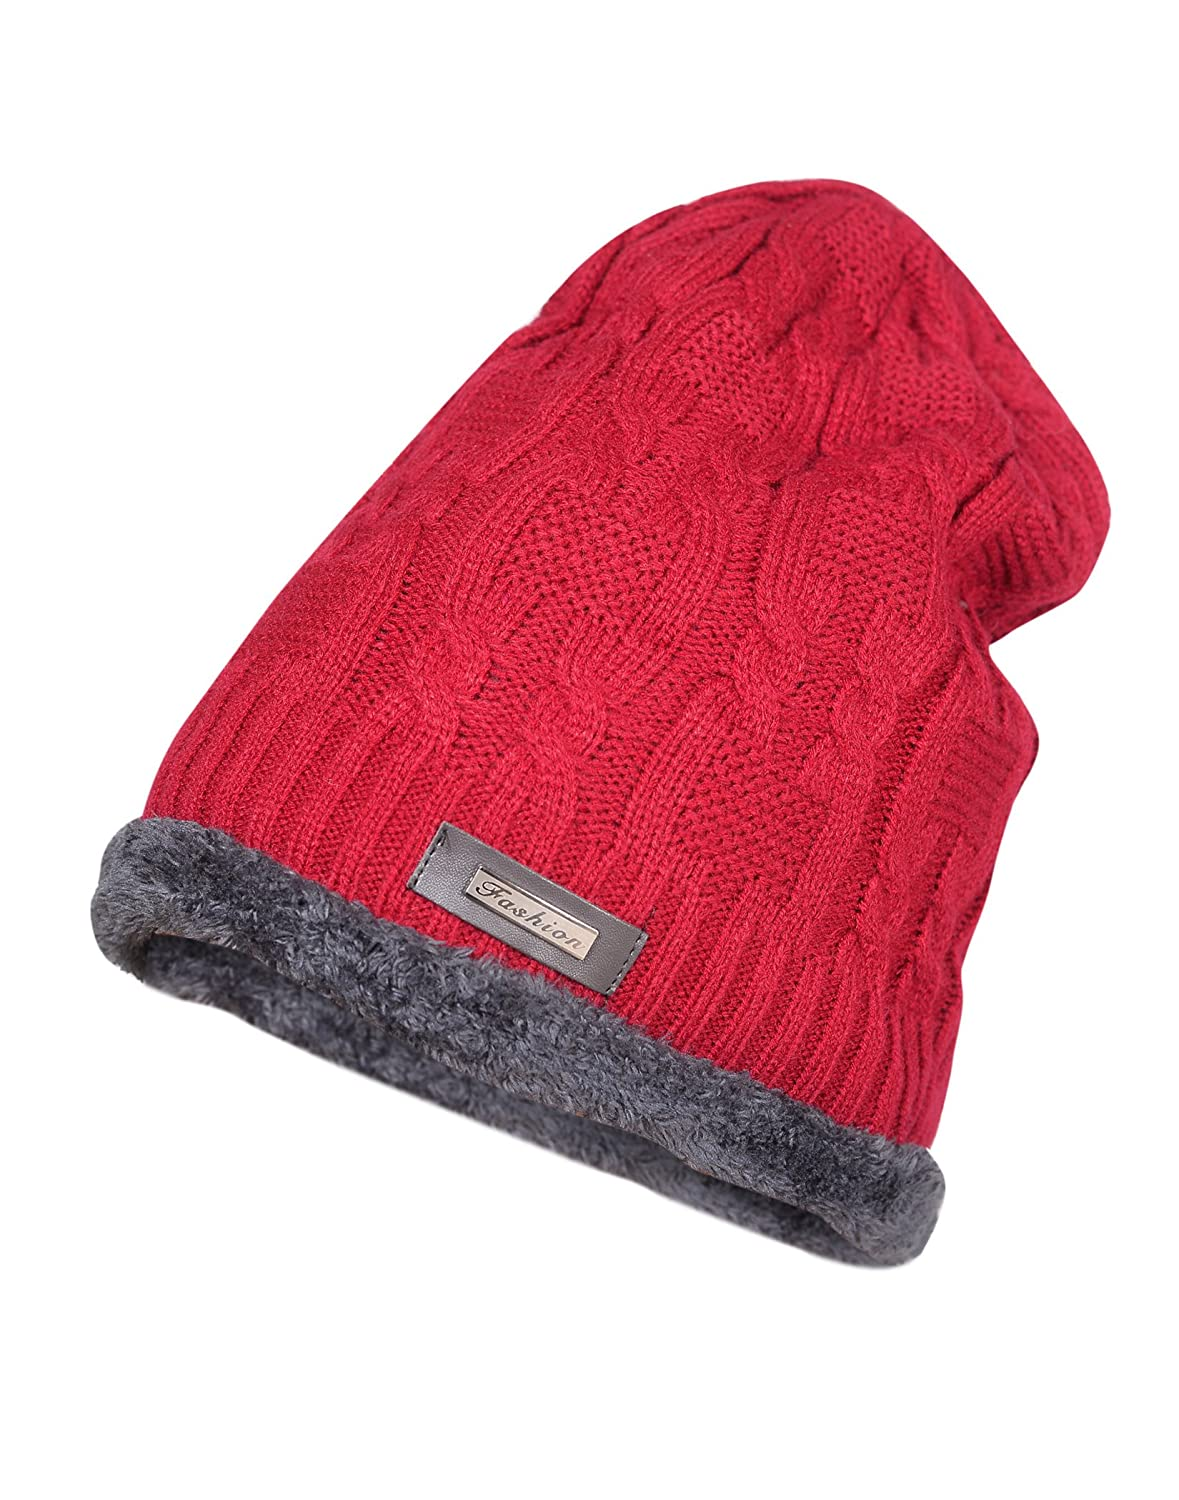 Krystle Men s Wool Knitted Cotton Warm Winter Hat with Inside Fur Beanie ( Red 49ae07c1382